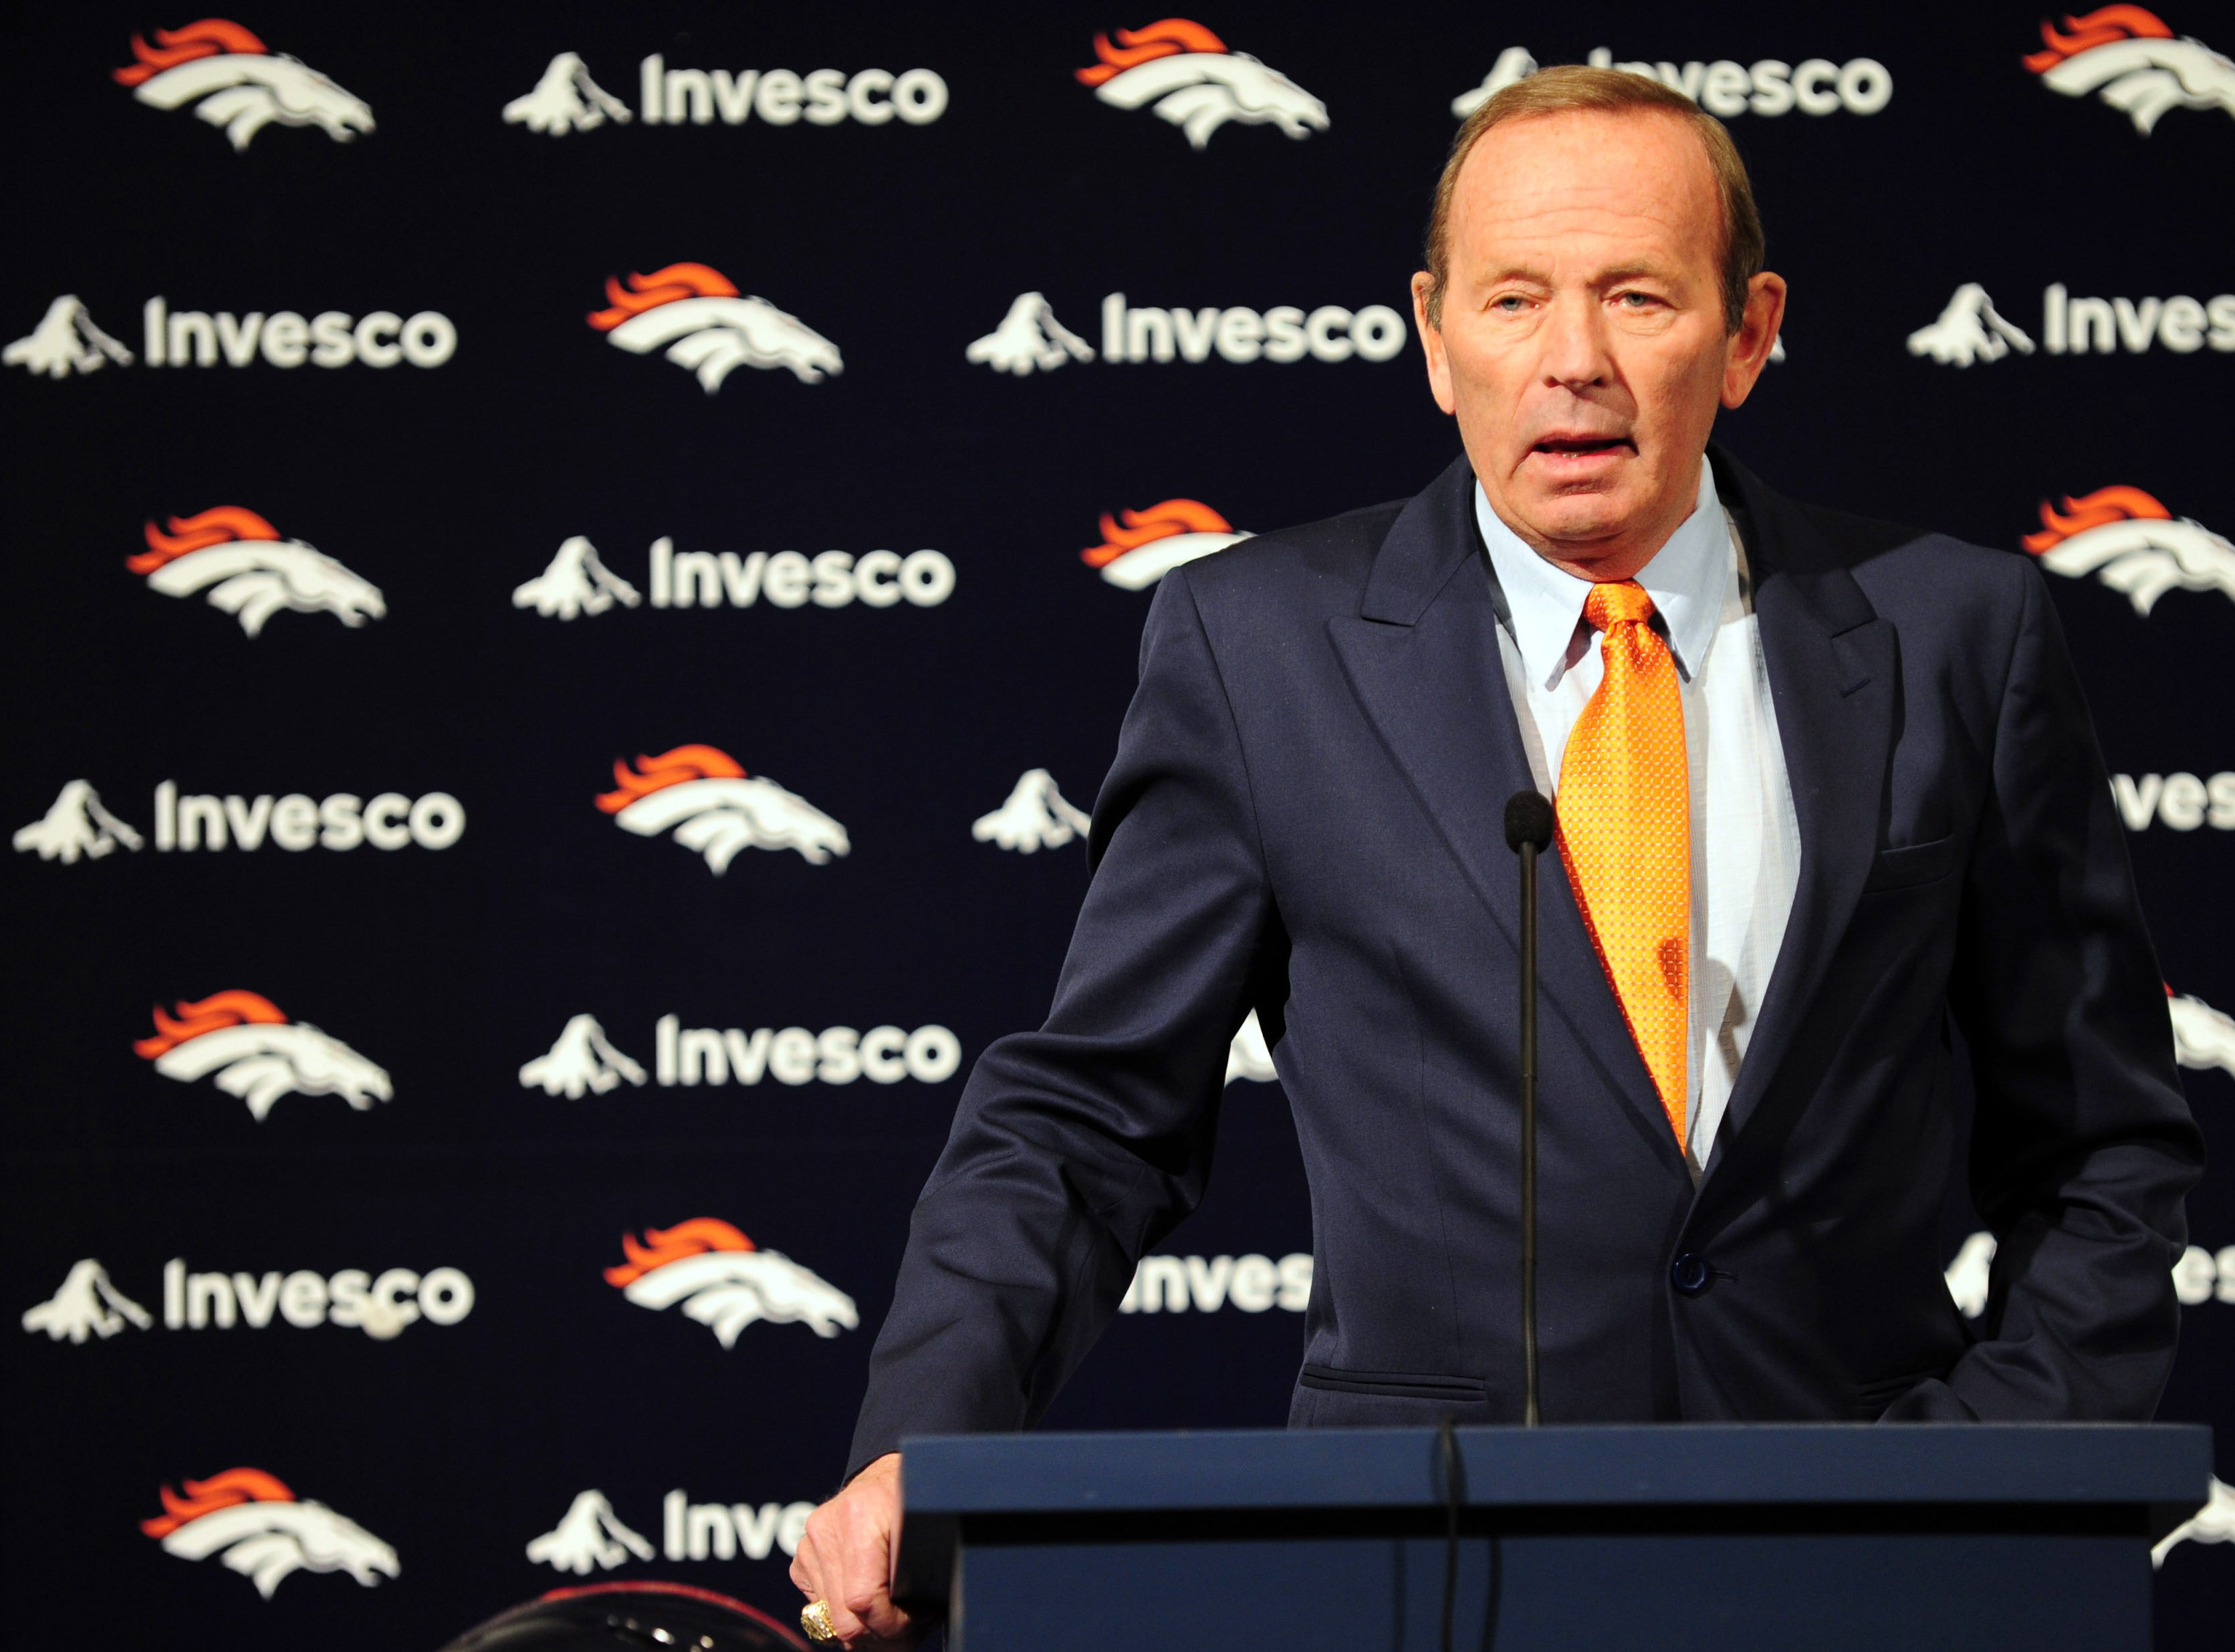 Pat Bowlen, the longtime owner of the Denver Broncos, was named to the Hall in the contributor category. The Broncos went to the Super Bowl seven times under him.